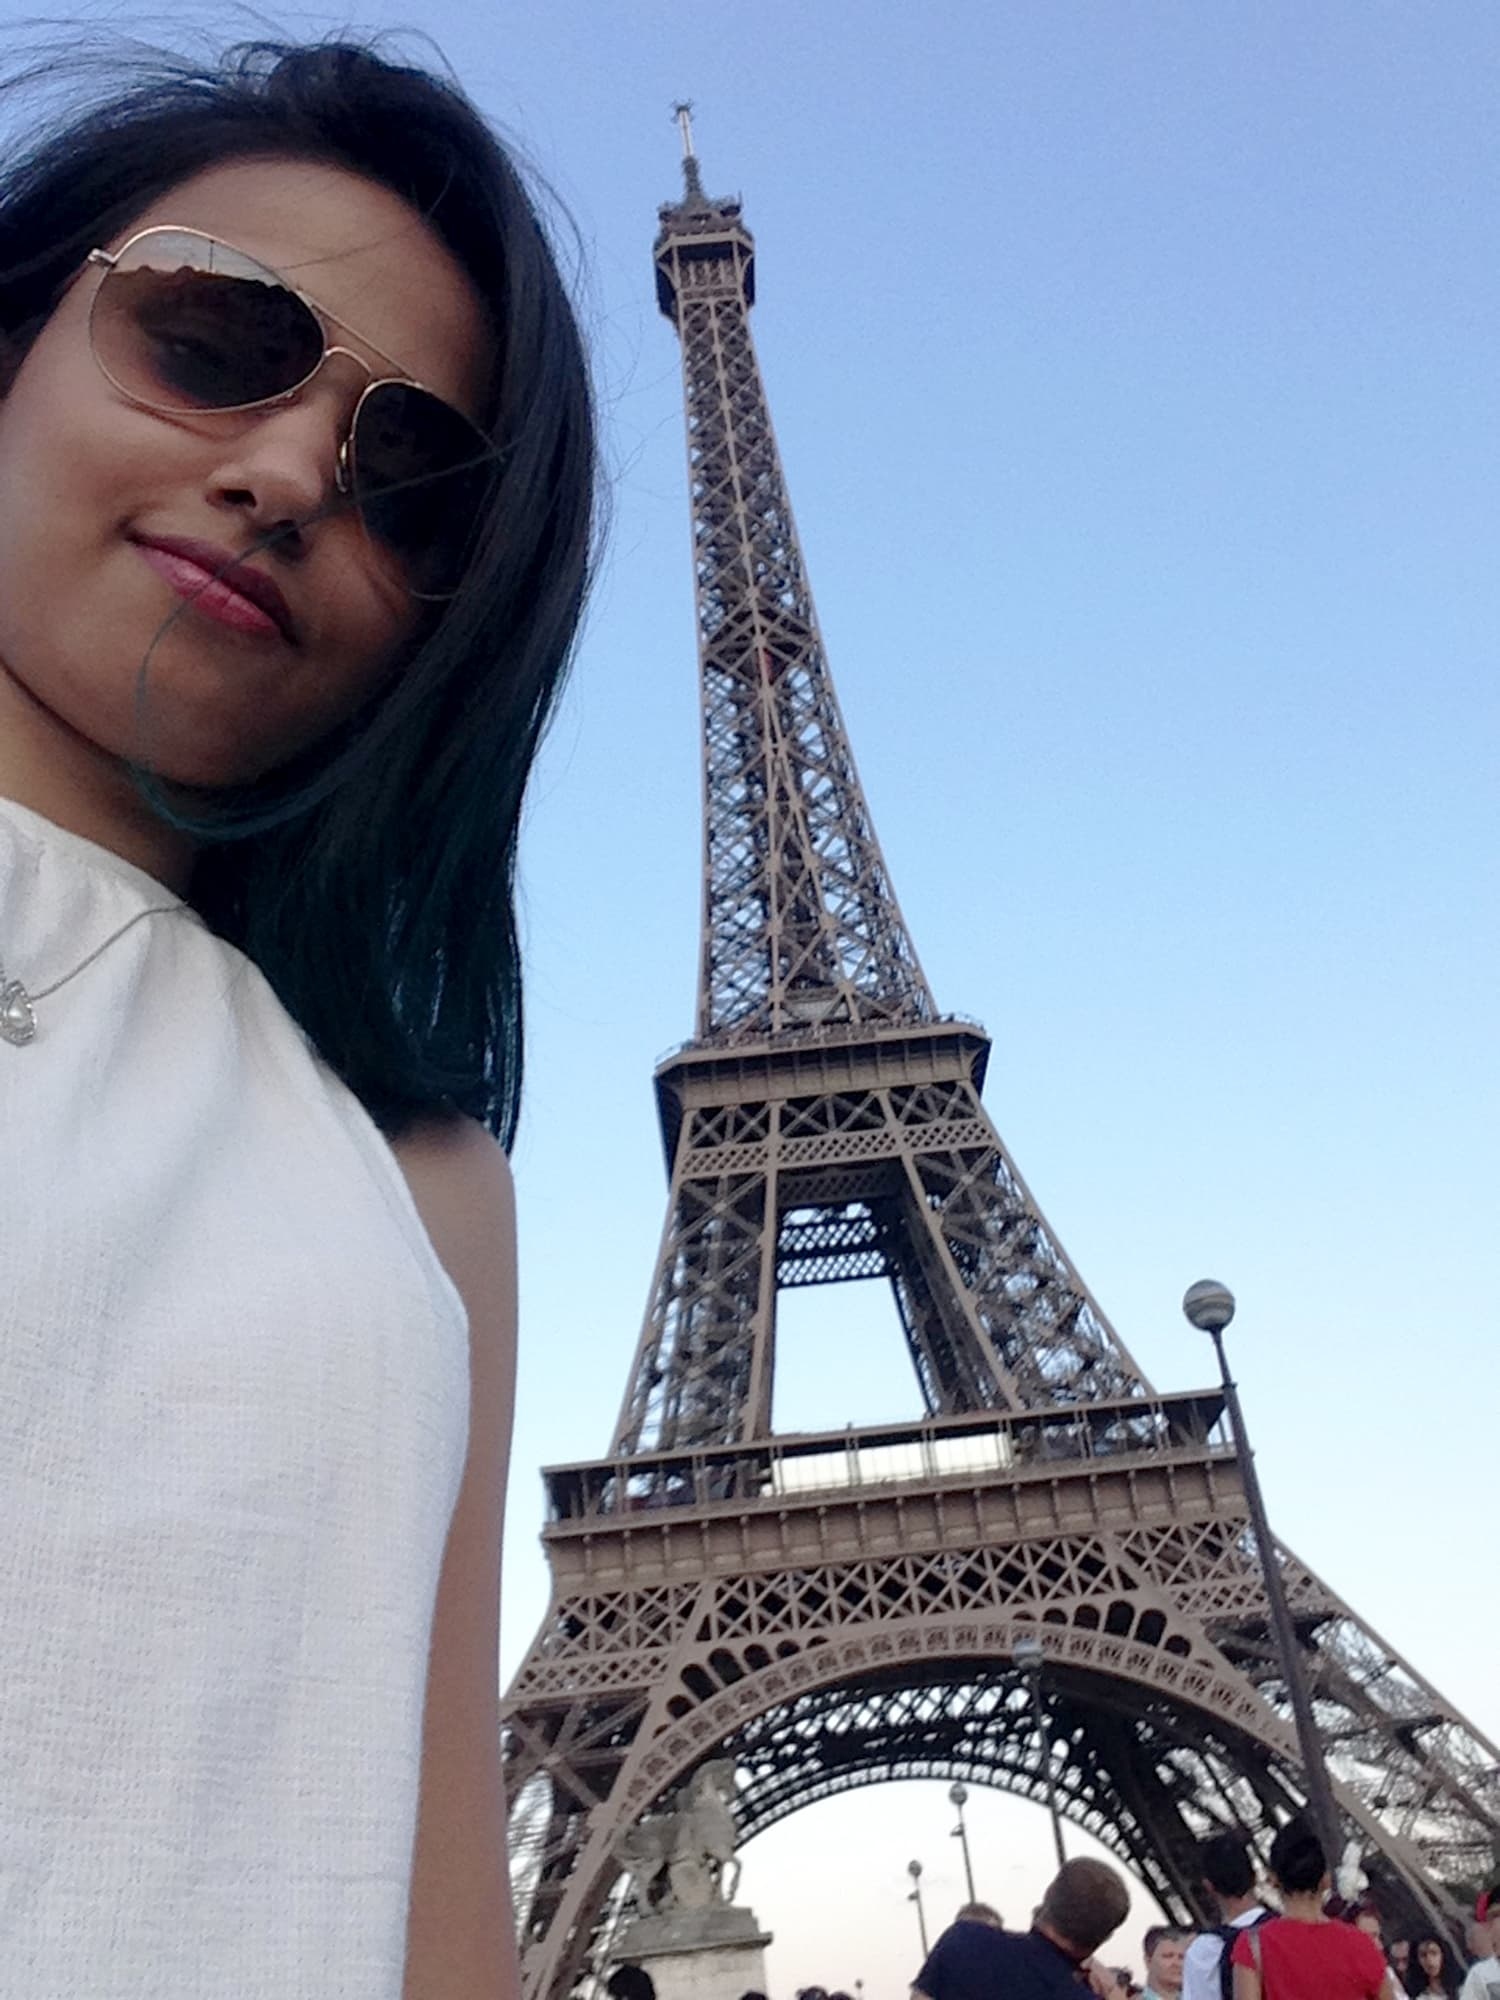 Visiting the Eiffel Tower in Paris, France.